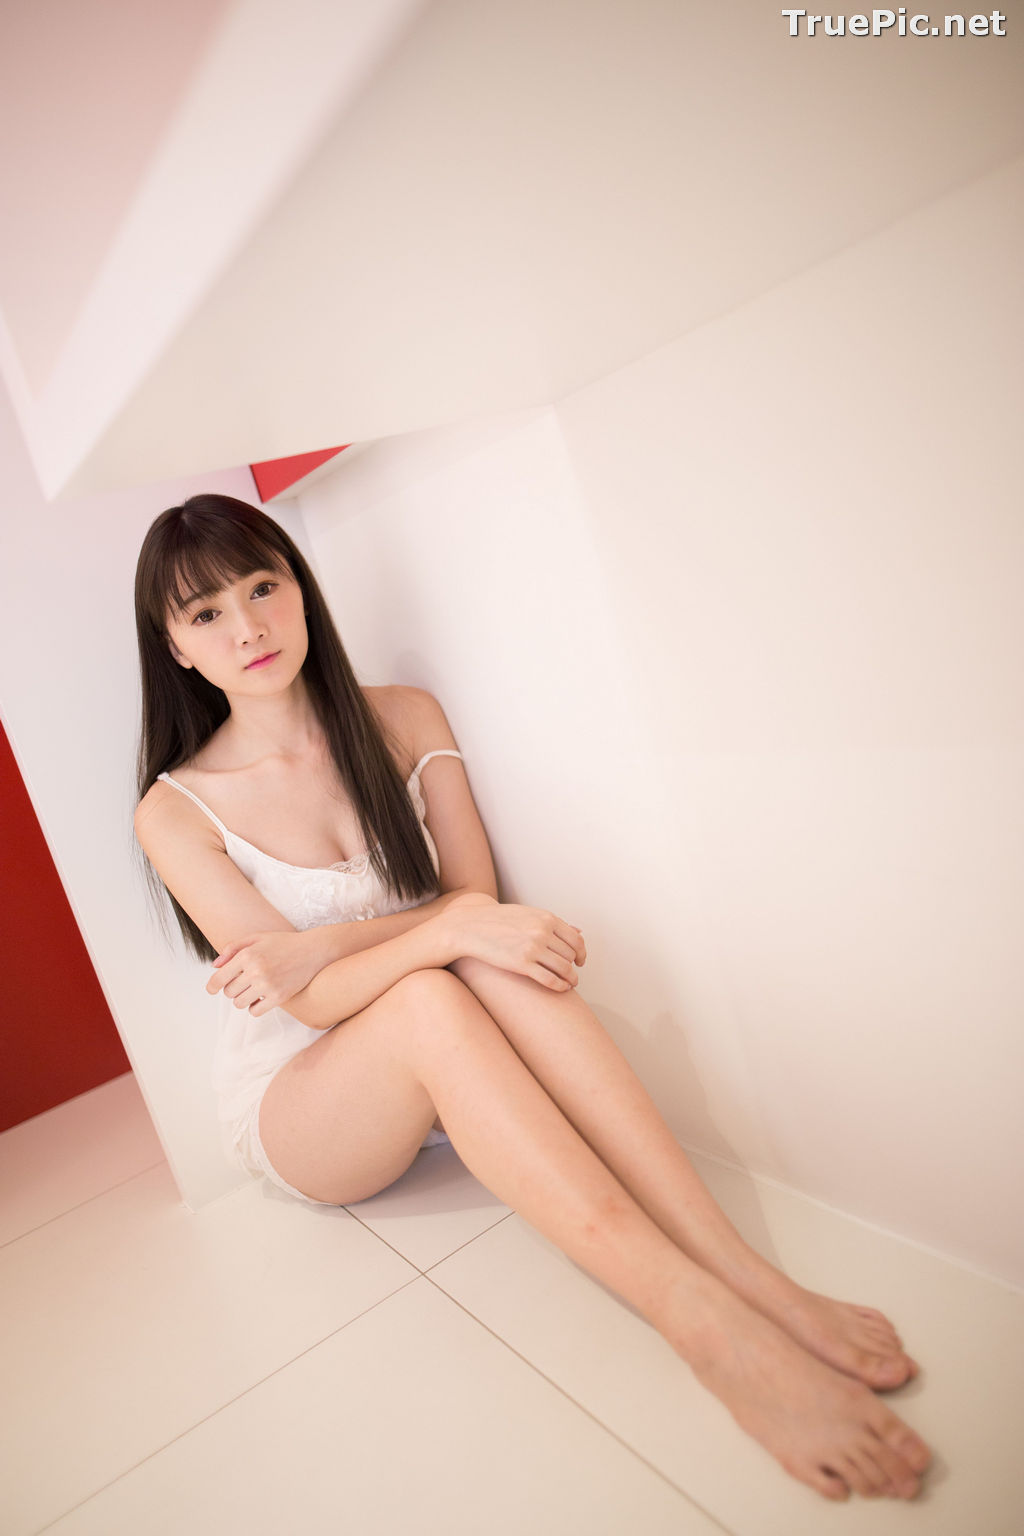 Image Taiwanese Hot Model - Sexy Kendo Girl - TruePic.net - Picture-63